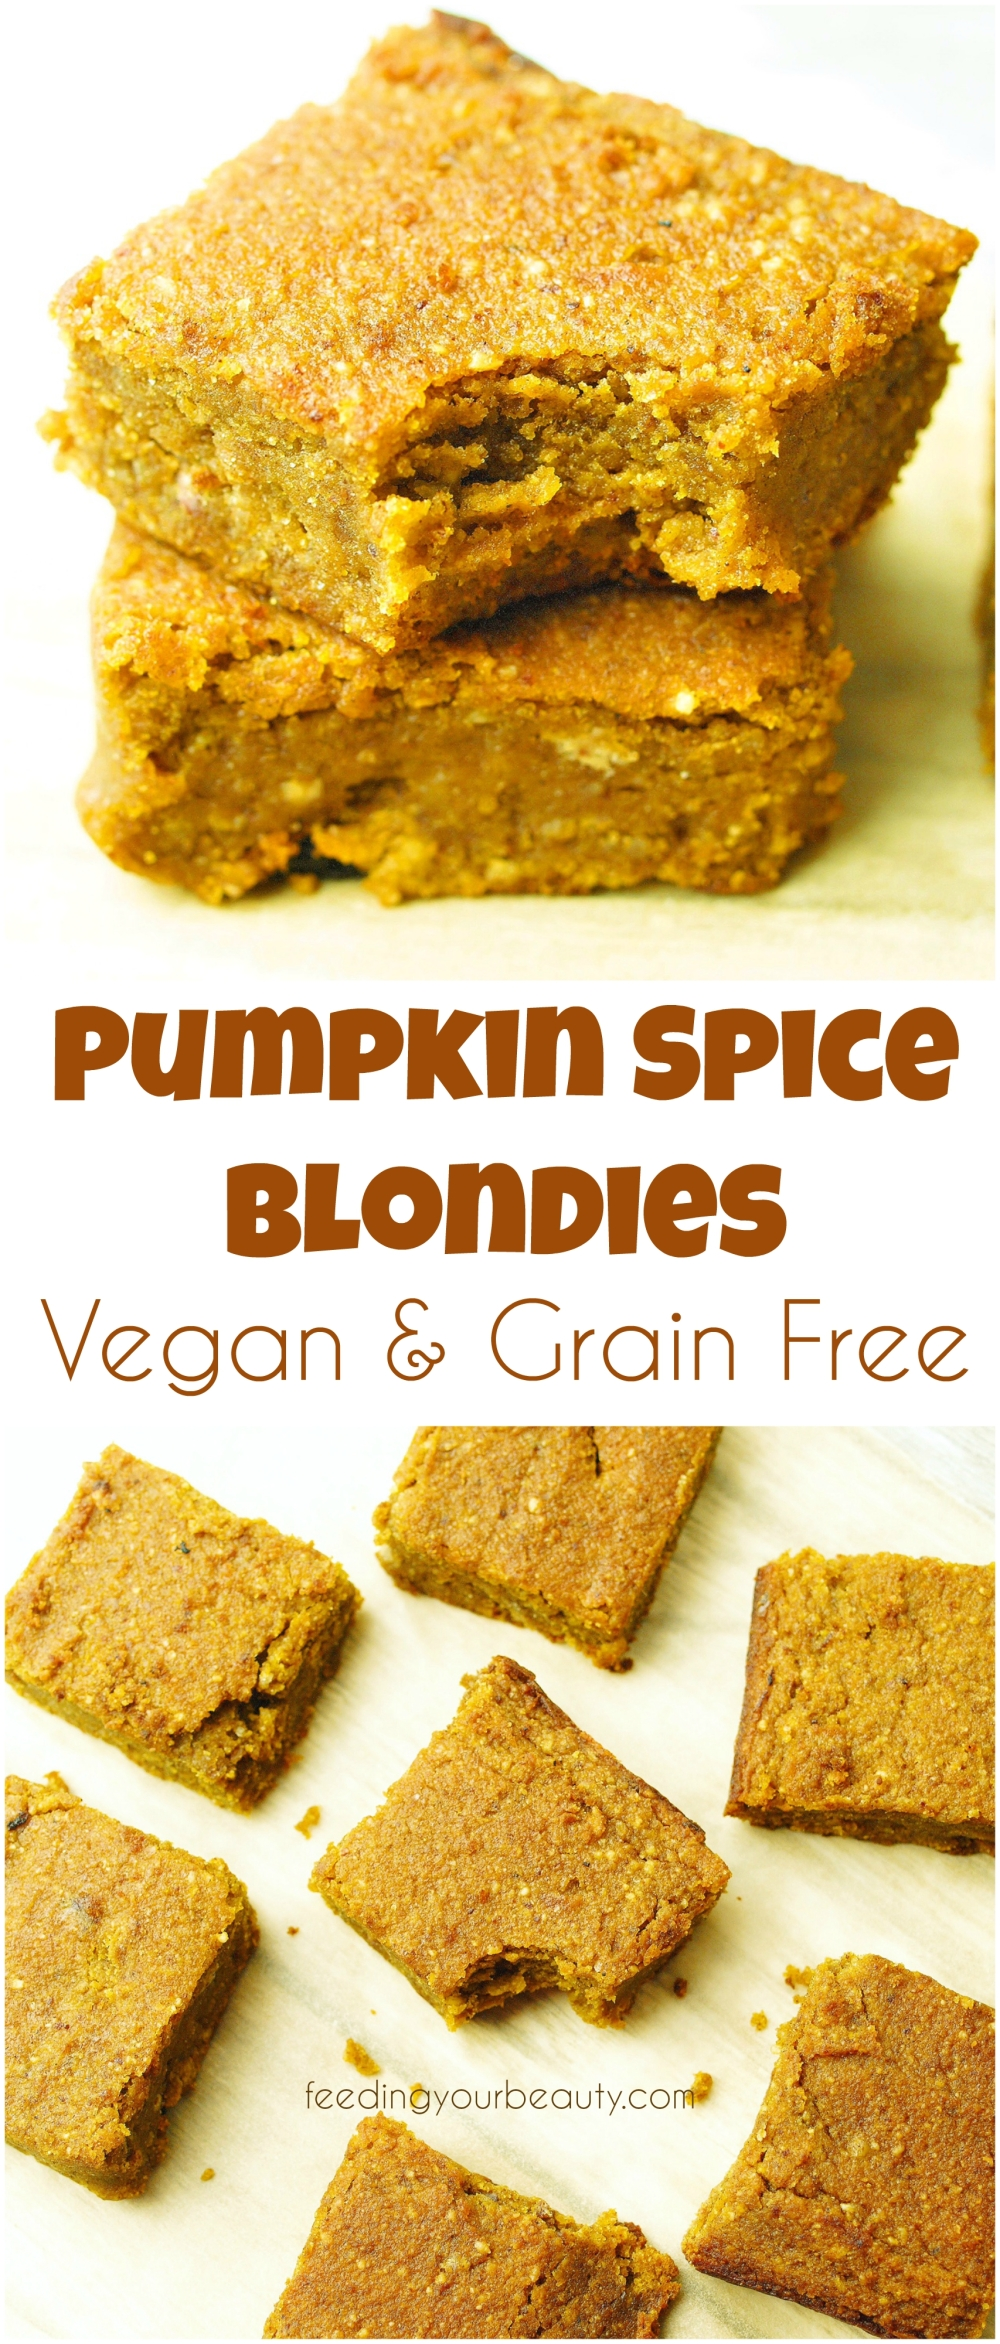 Pumpkin Spice Blondies - Vegan, Naturally Sweetened, Gluten Free, Oil Free, Grain Free